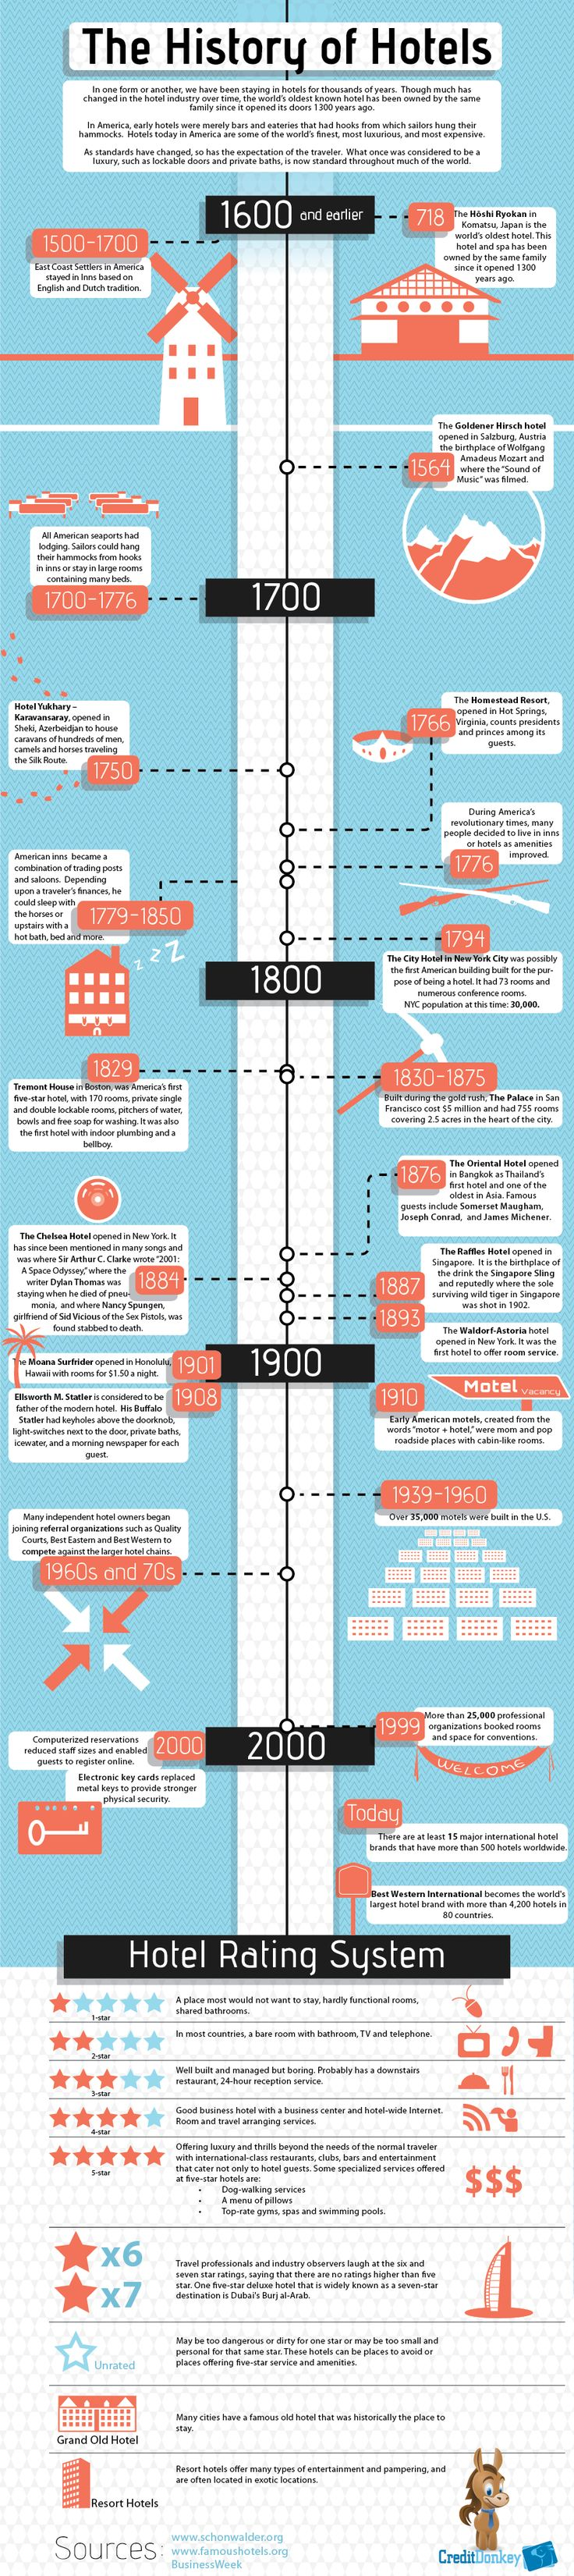 "The History of Hotels - infographic - Timeline from 817 (first hotel) to 2012 with Star Rating System - Hotel Brands like ""Best Western"" and computer reservations :)"